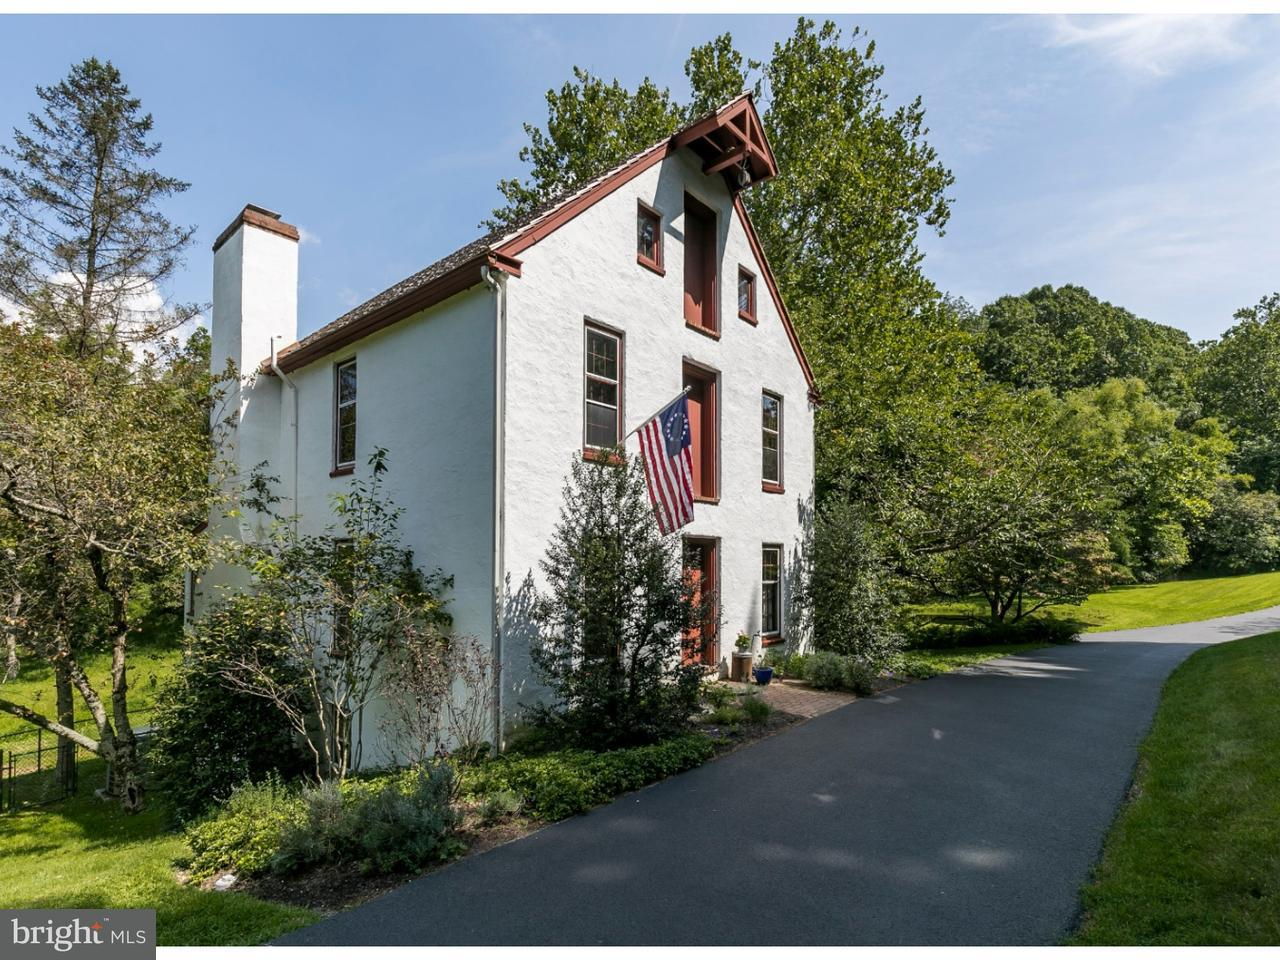 975  Conner West Chester , PA 19380